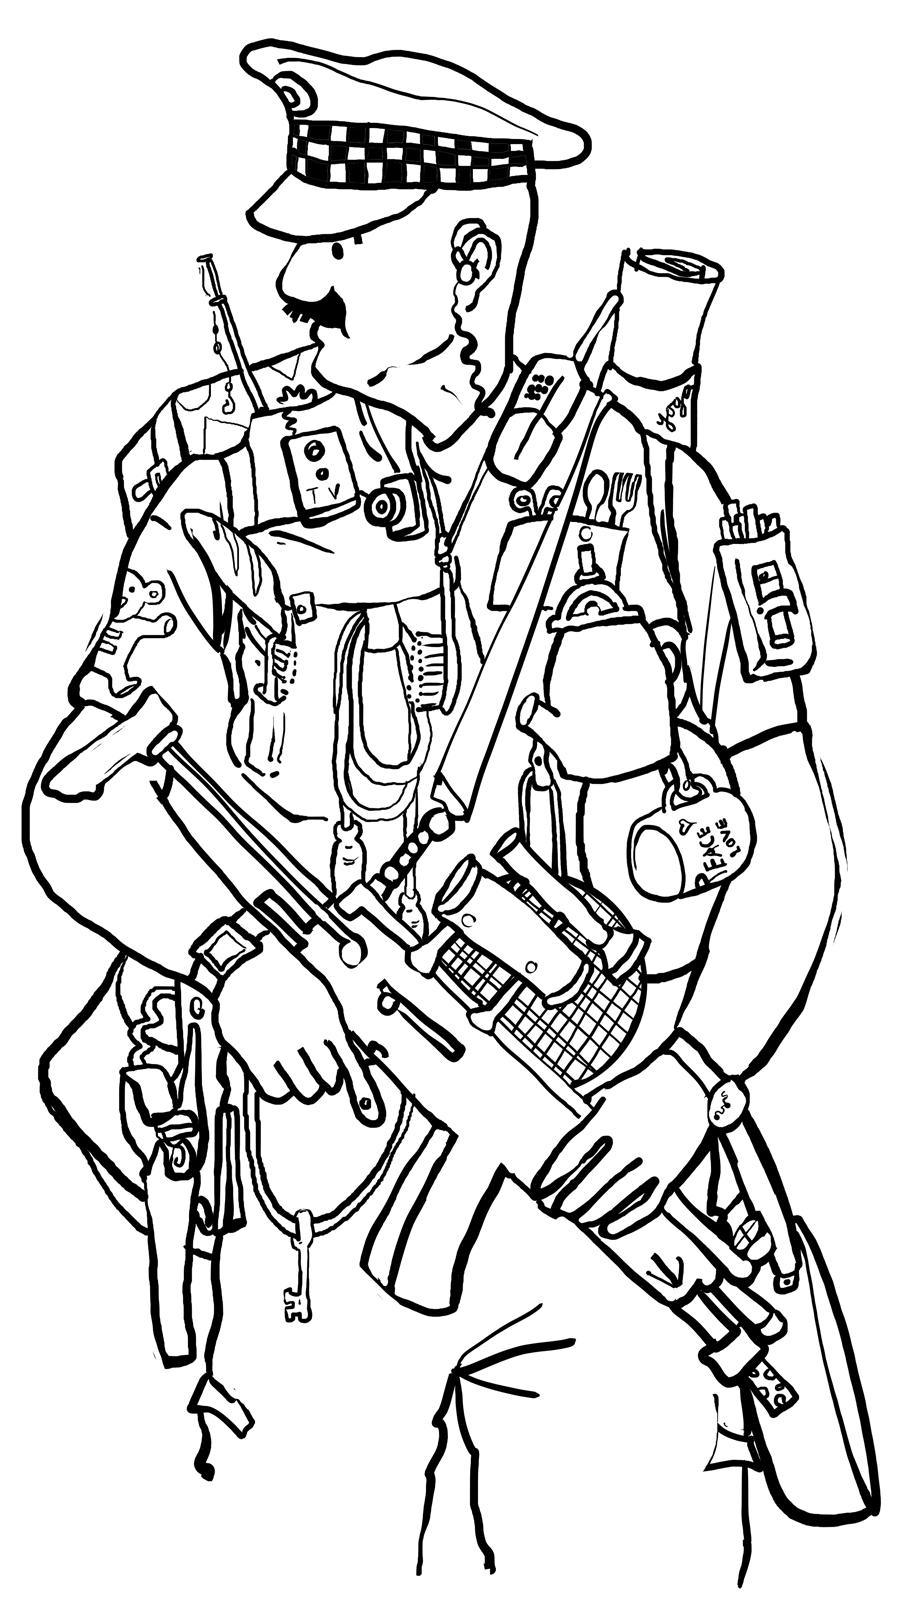 how to draw a police officer police officer drawing at getdrawings free download officer police to draw how a